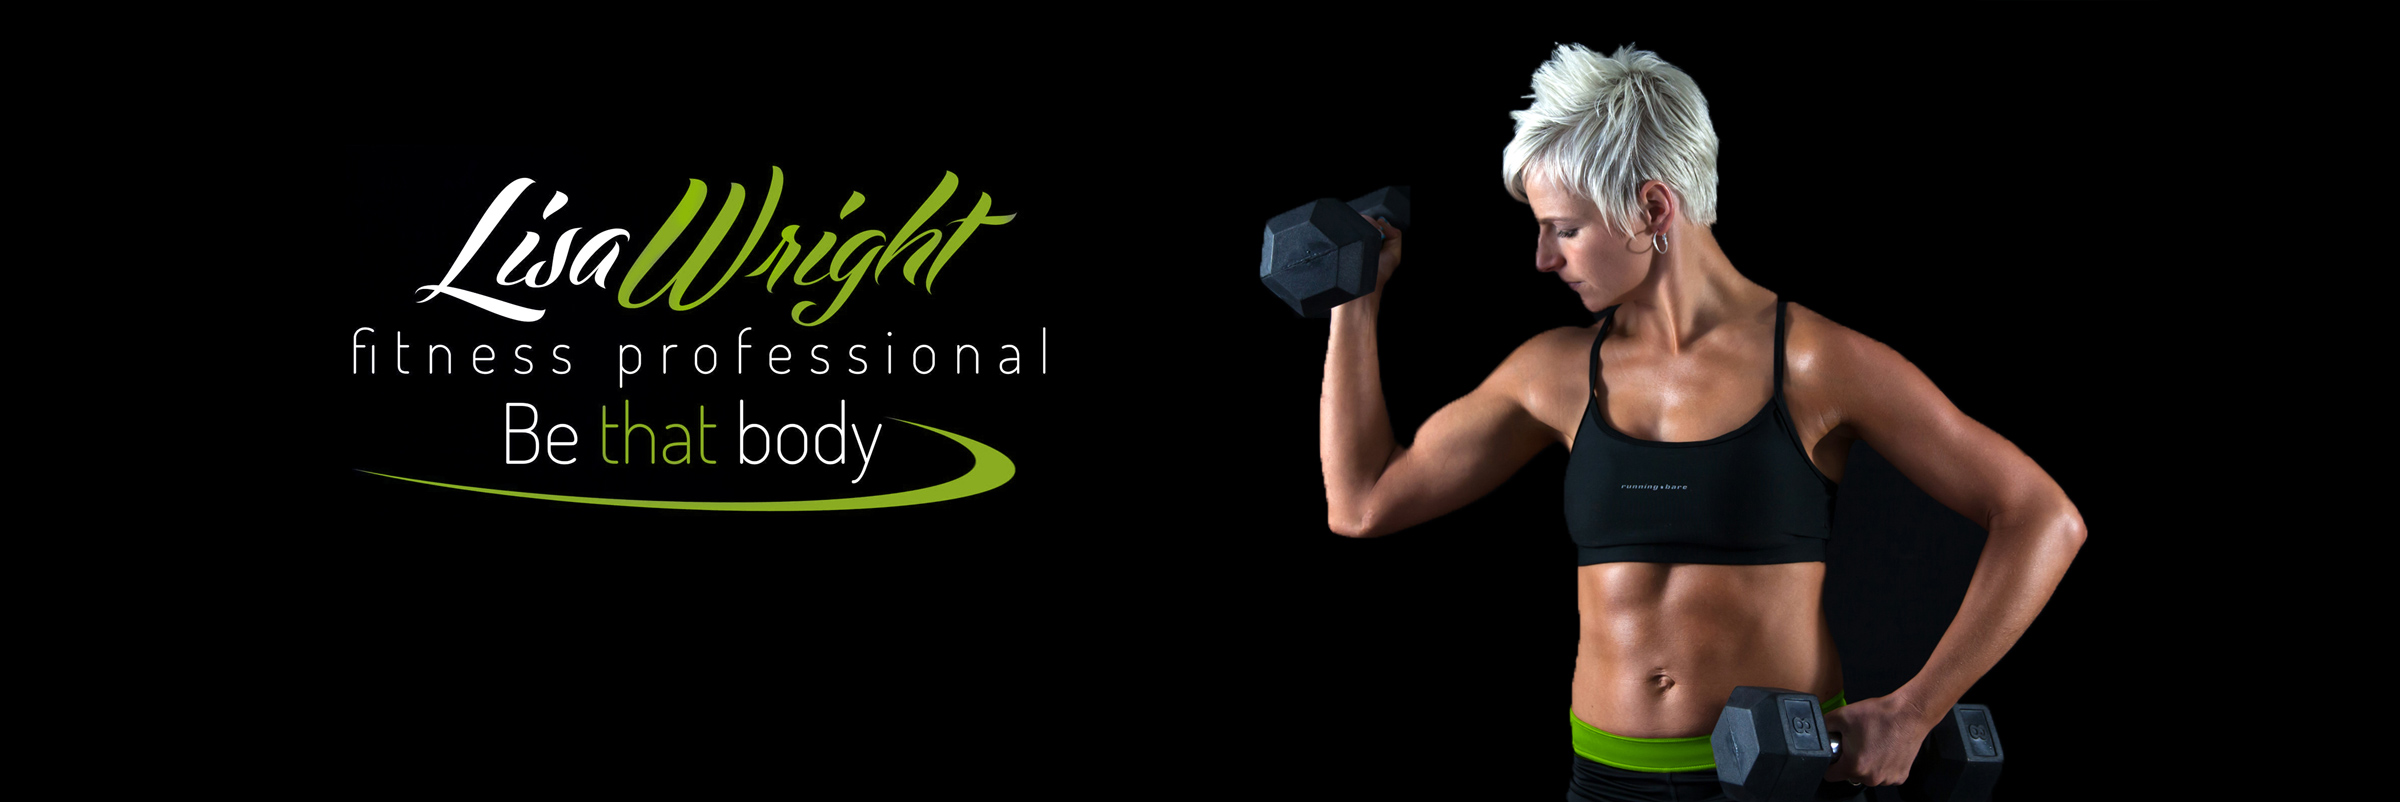 Lisa Wright Fitness Professional